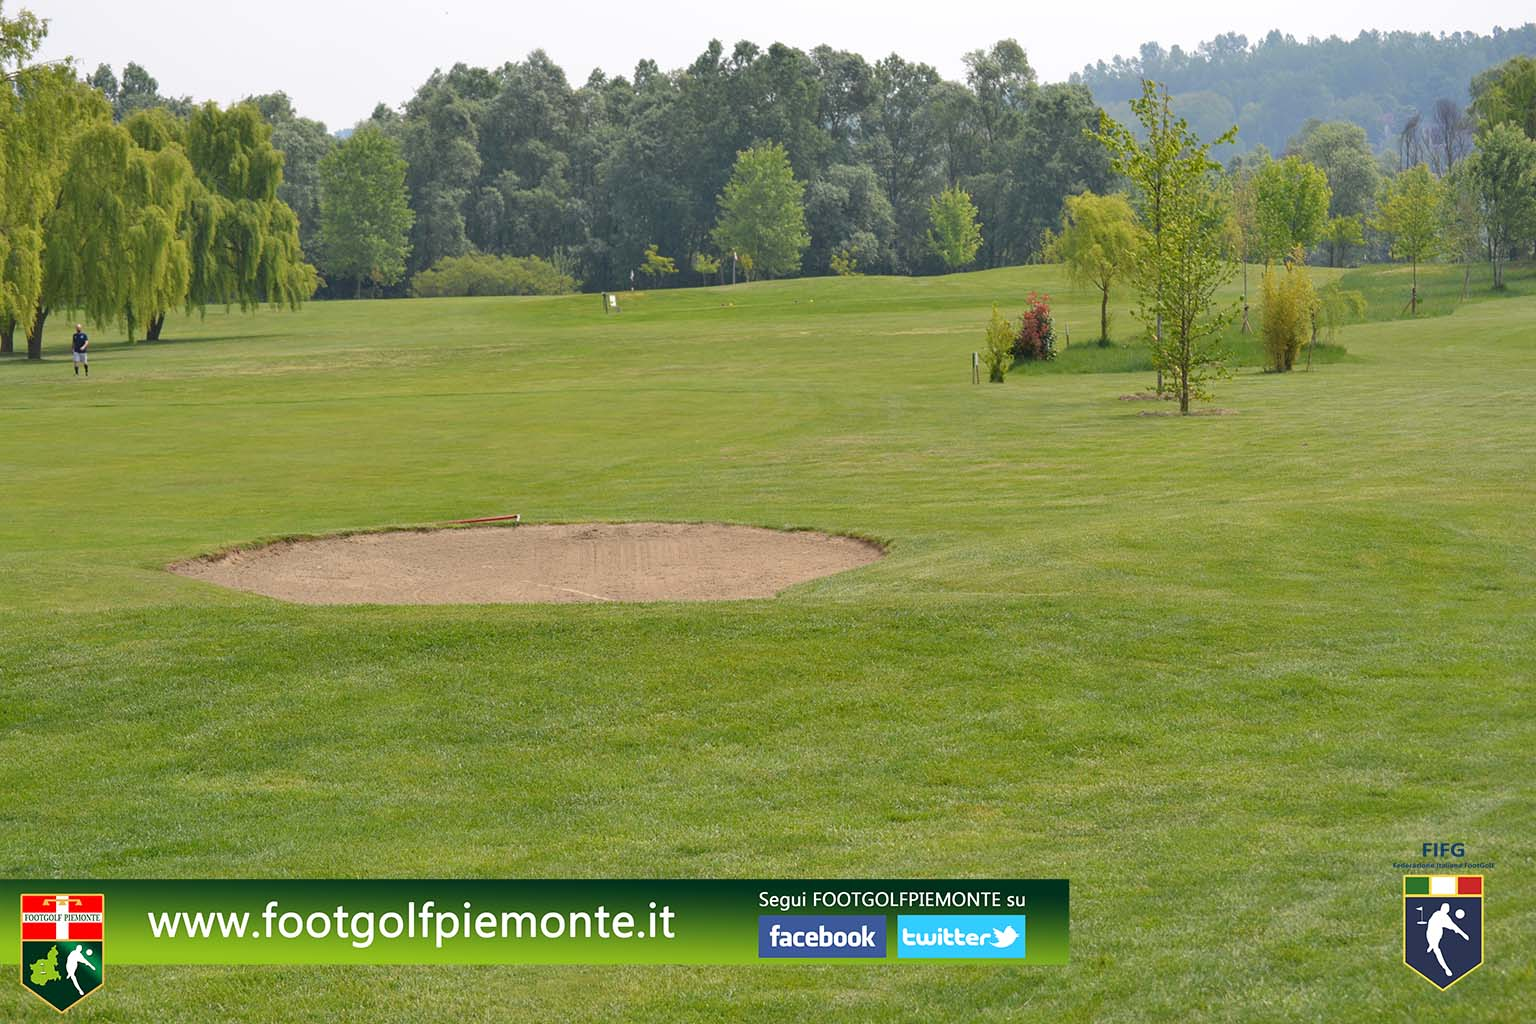 FOTO 9 Regions' Cup Footgolf Piemonte 2016 Golf Città di Asti (At) 30apr16-21